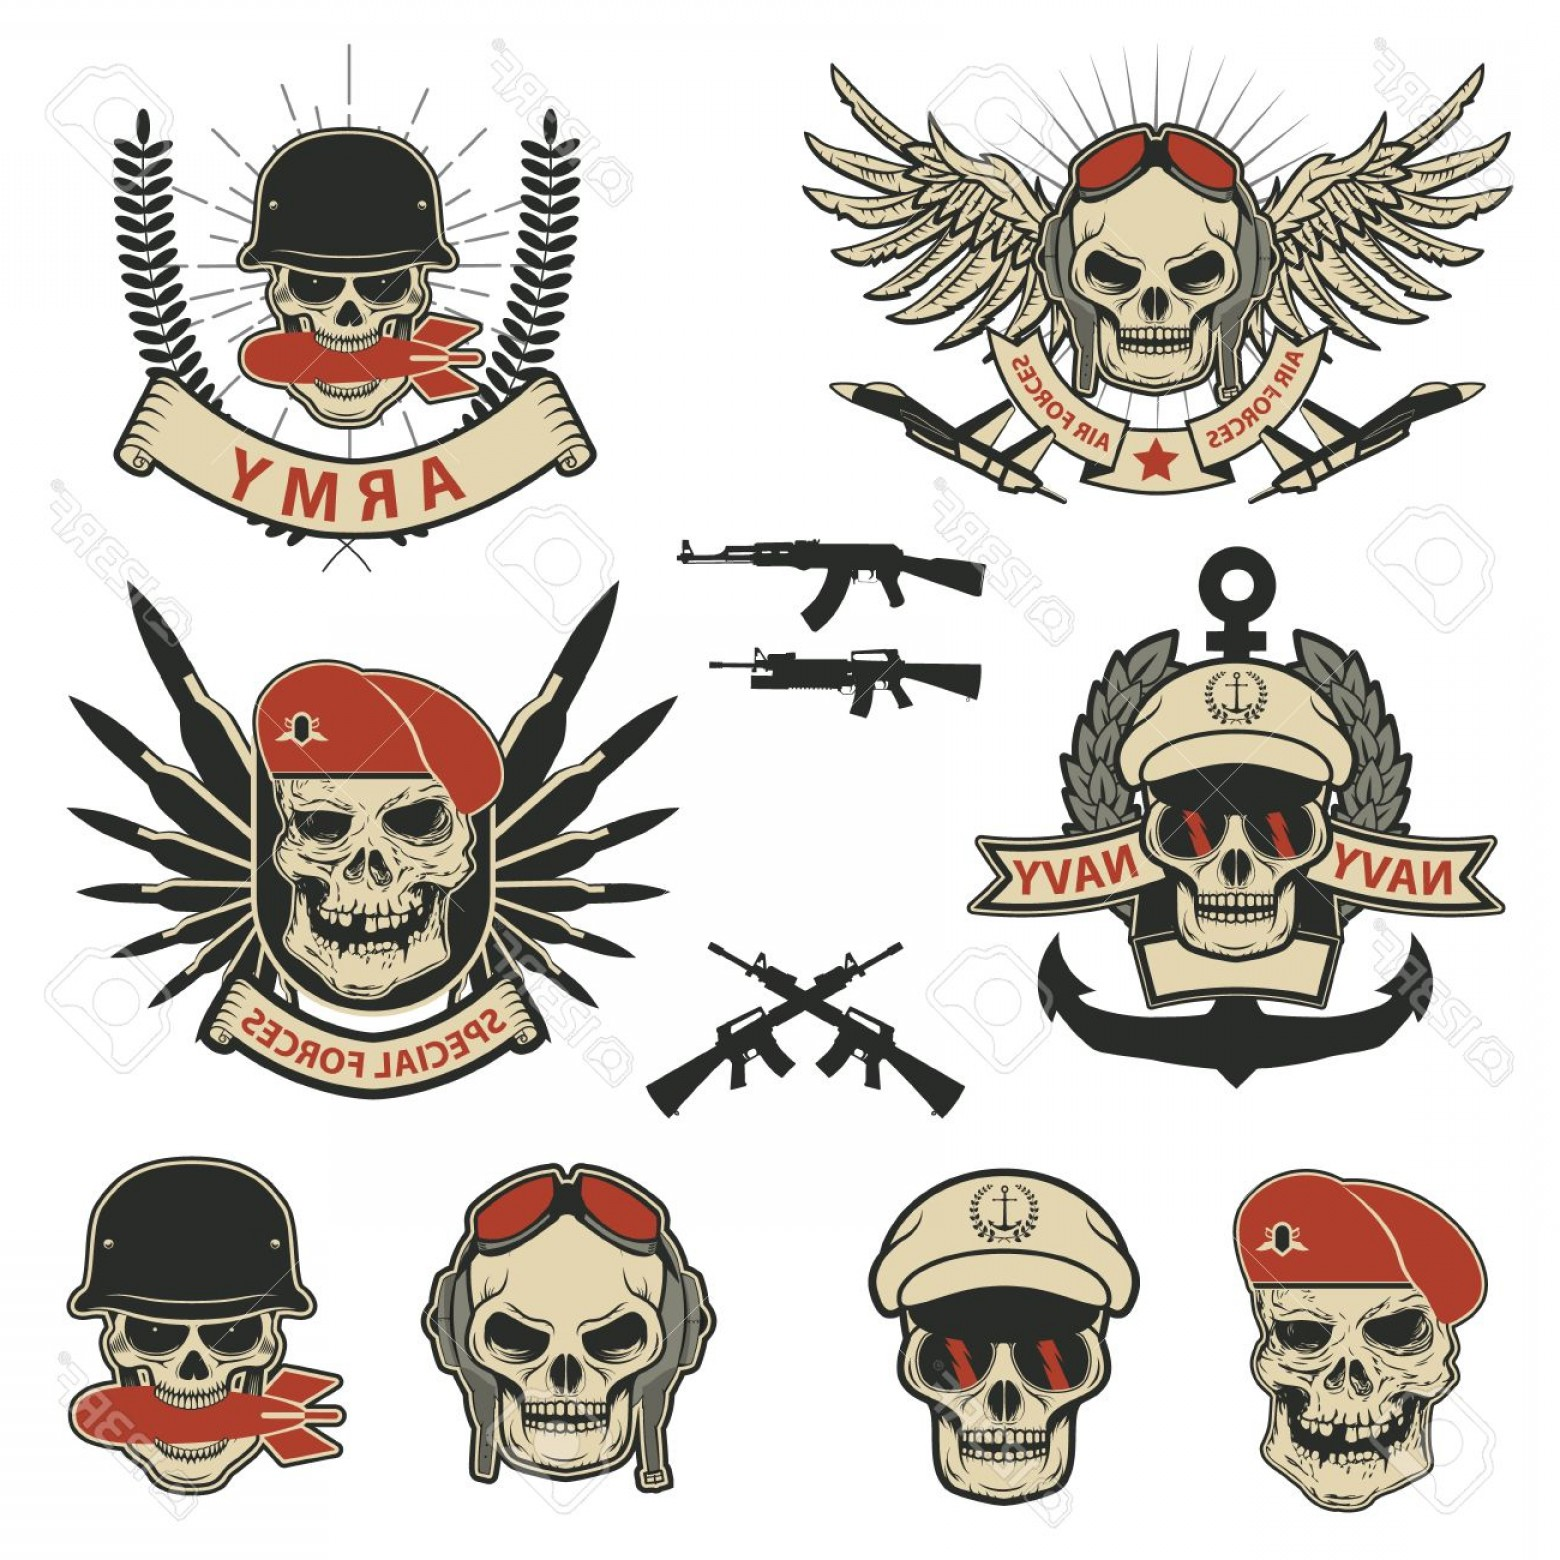 Us Special Forces Vector Files: Photostock Vector Set Of Military Labels Badges And Design Elements Special Forces Skull With Grenade Vector Illustrat